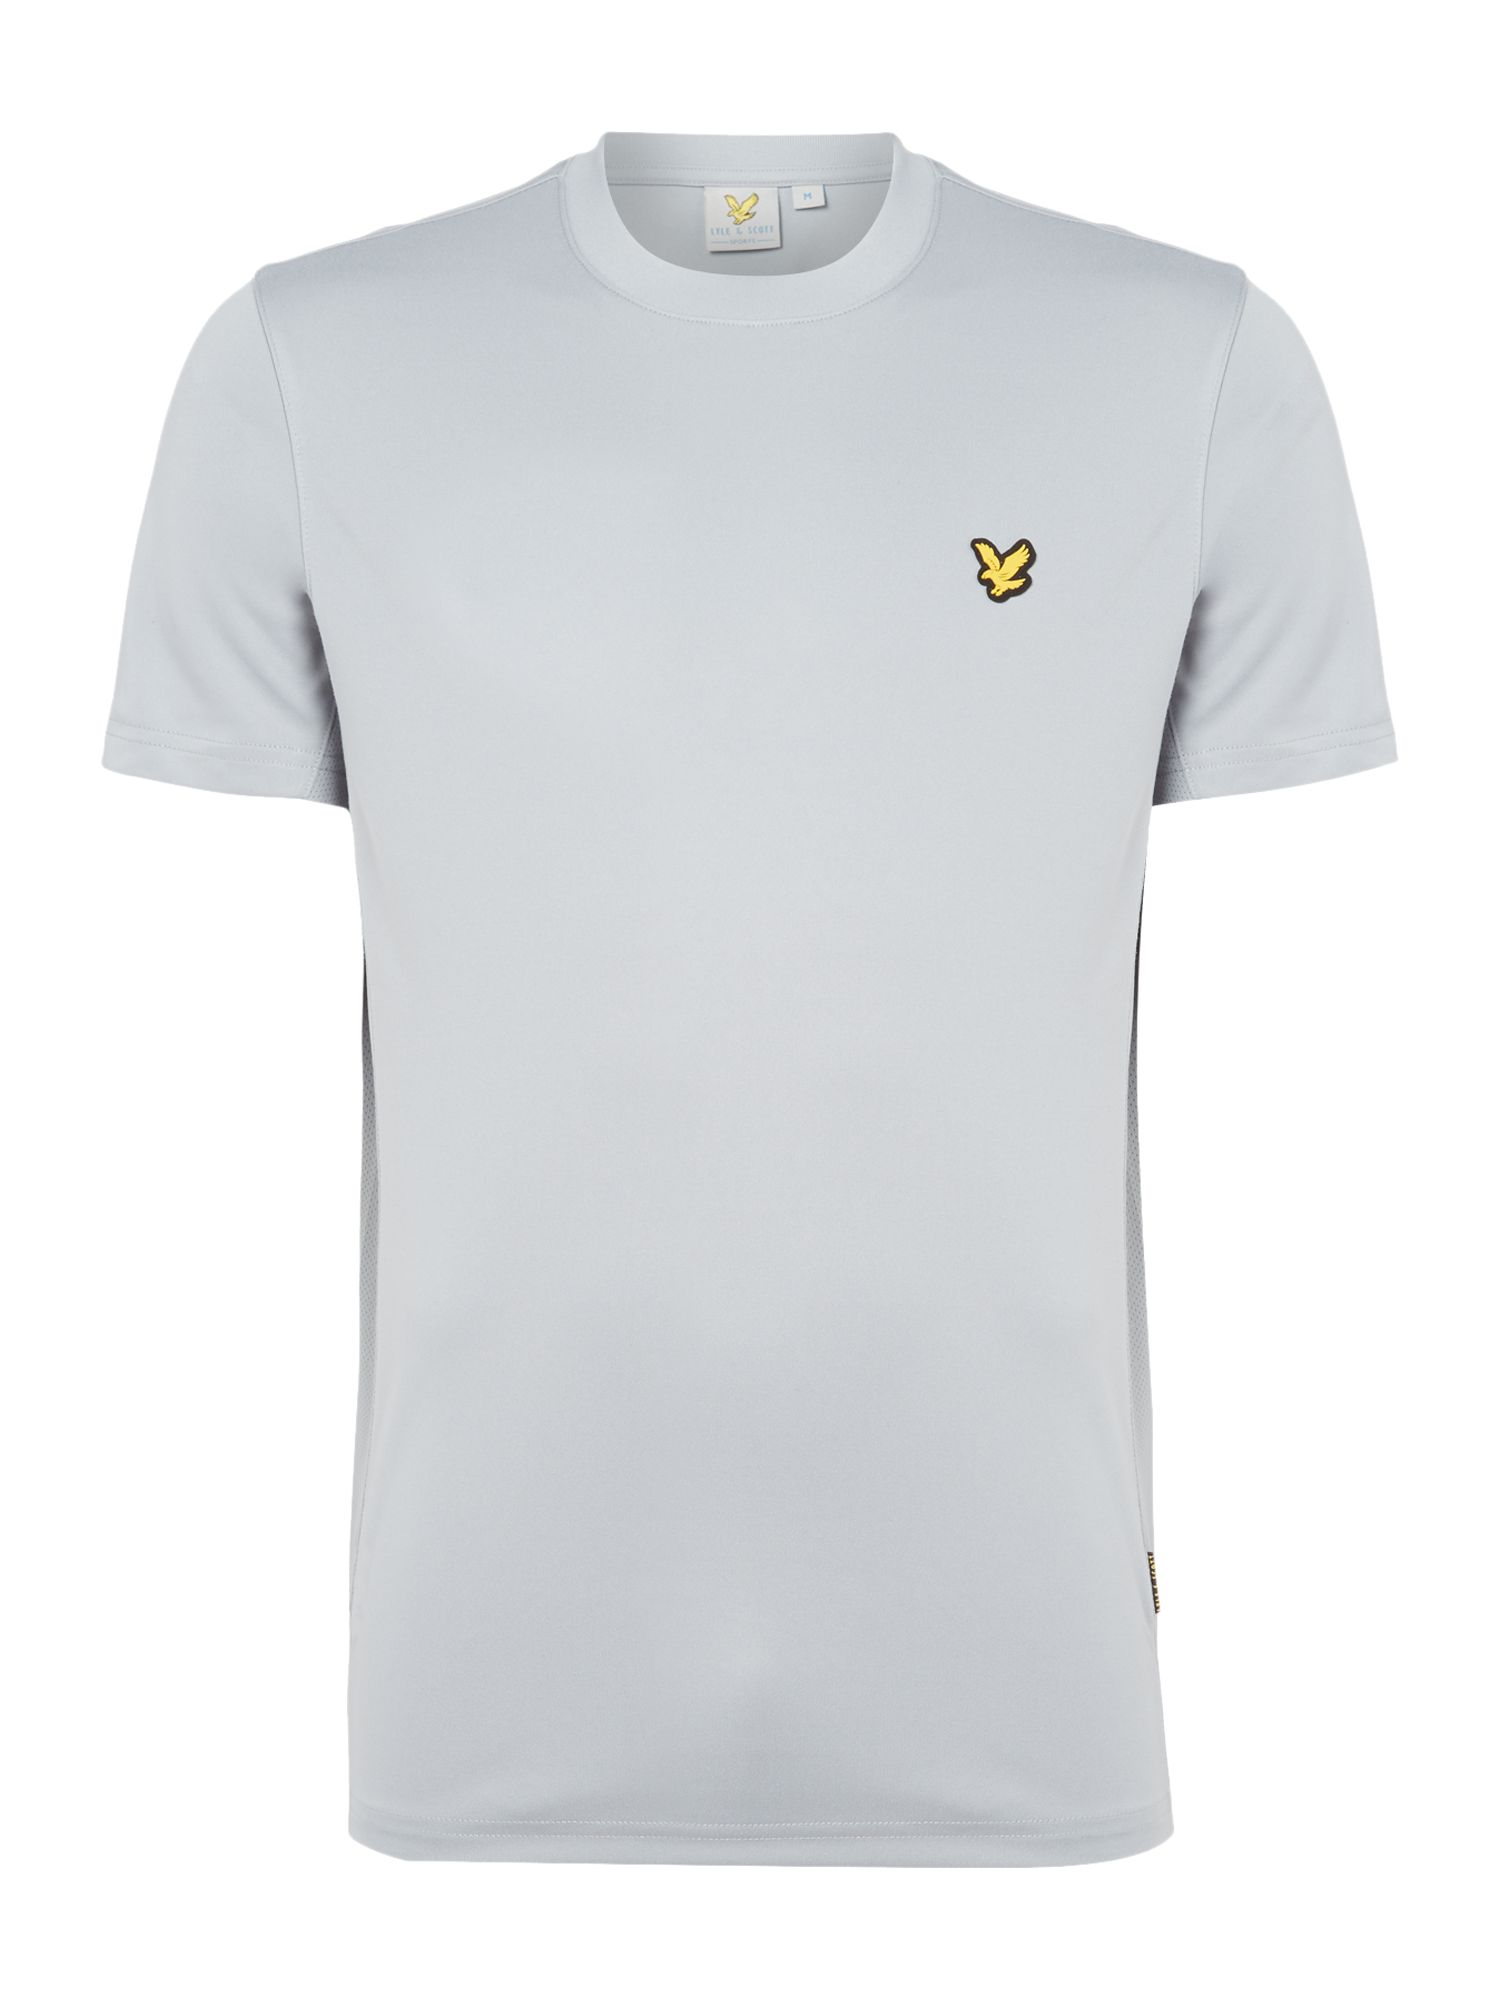 Lyle and Scott Men's Lyle and Scott Sports Crew-Neck Short-Sleeve T-Shirt, Grey